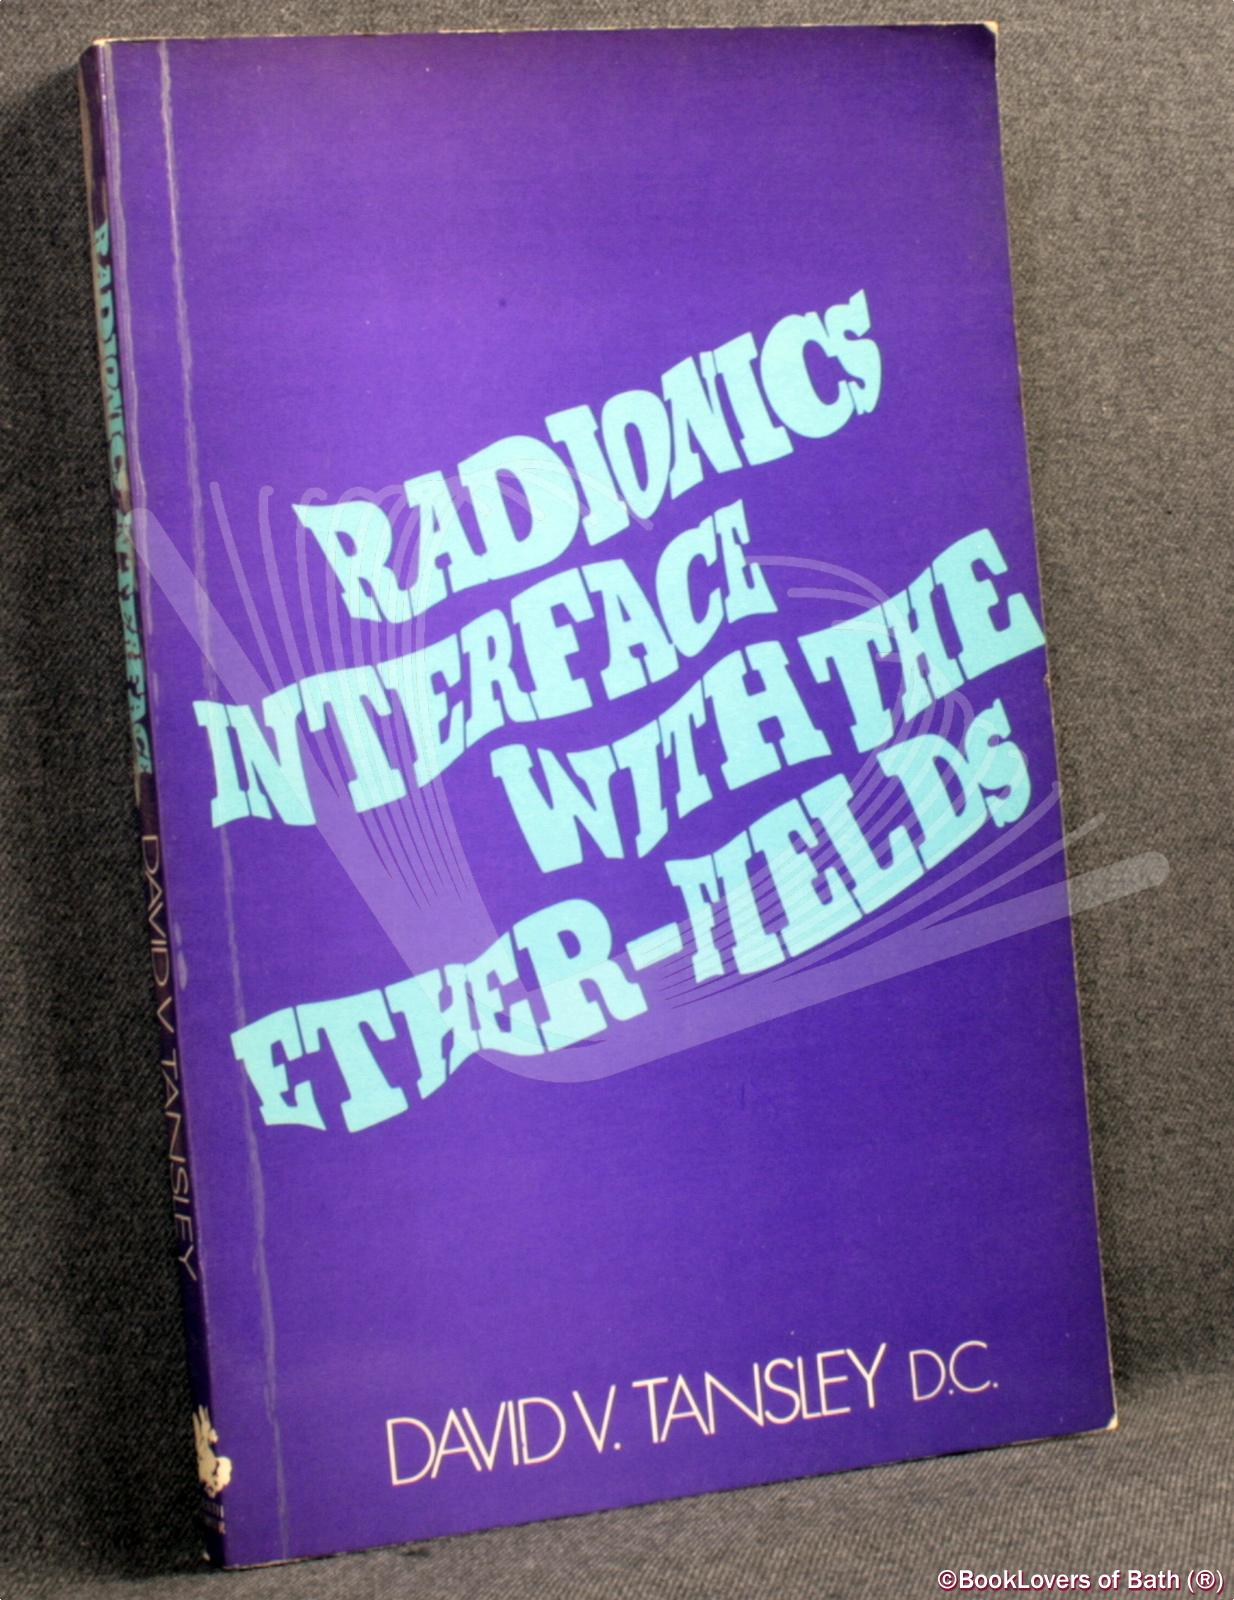 Radionics: Interface with the Ether Fields - David V. Tansley